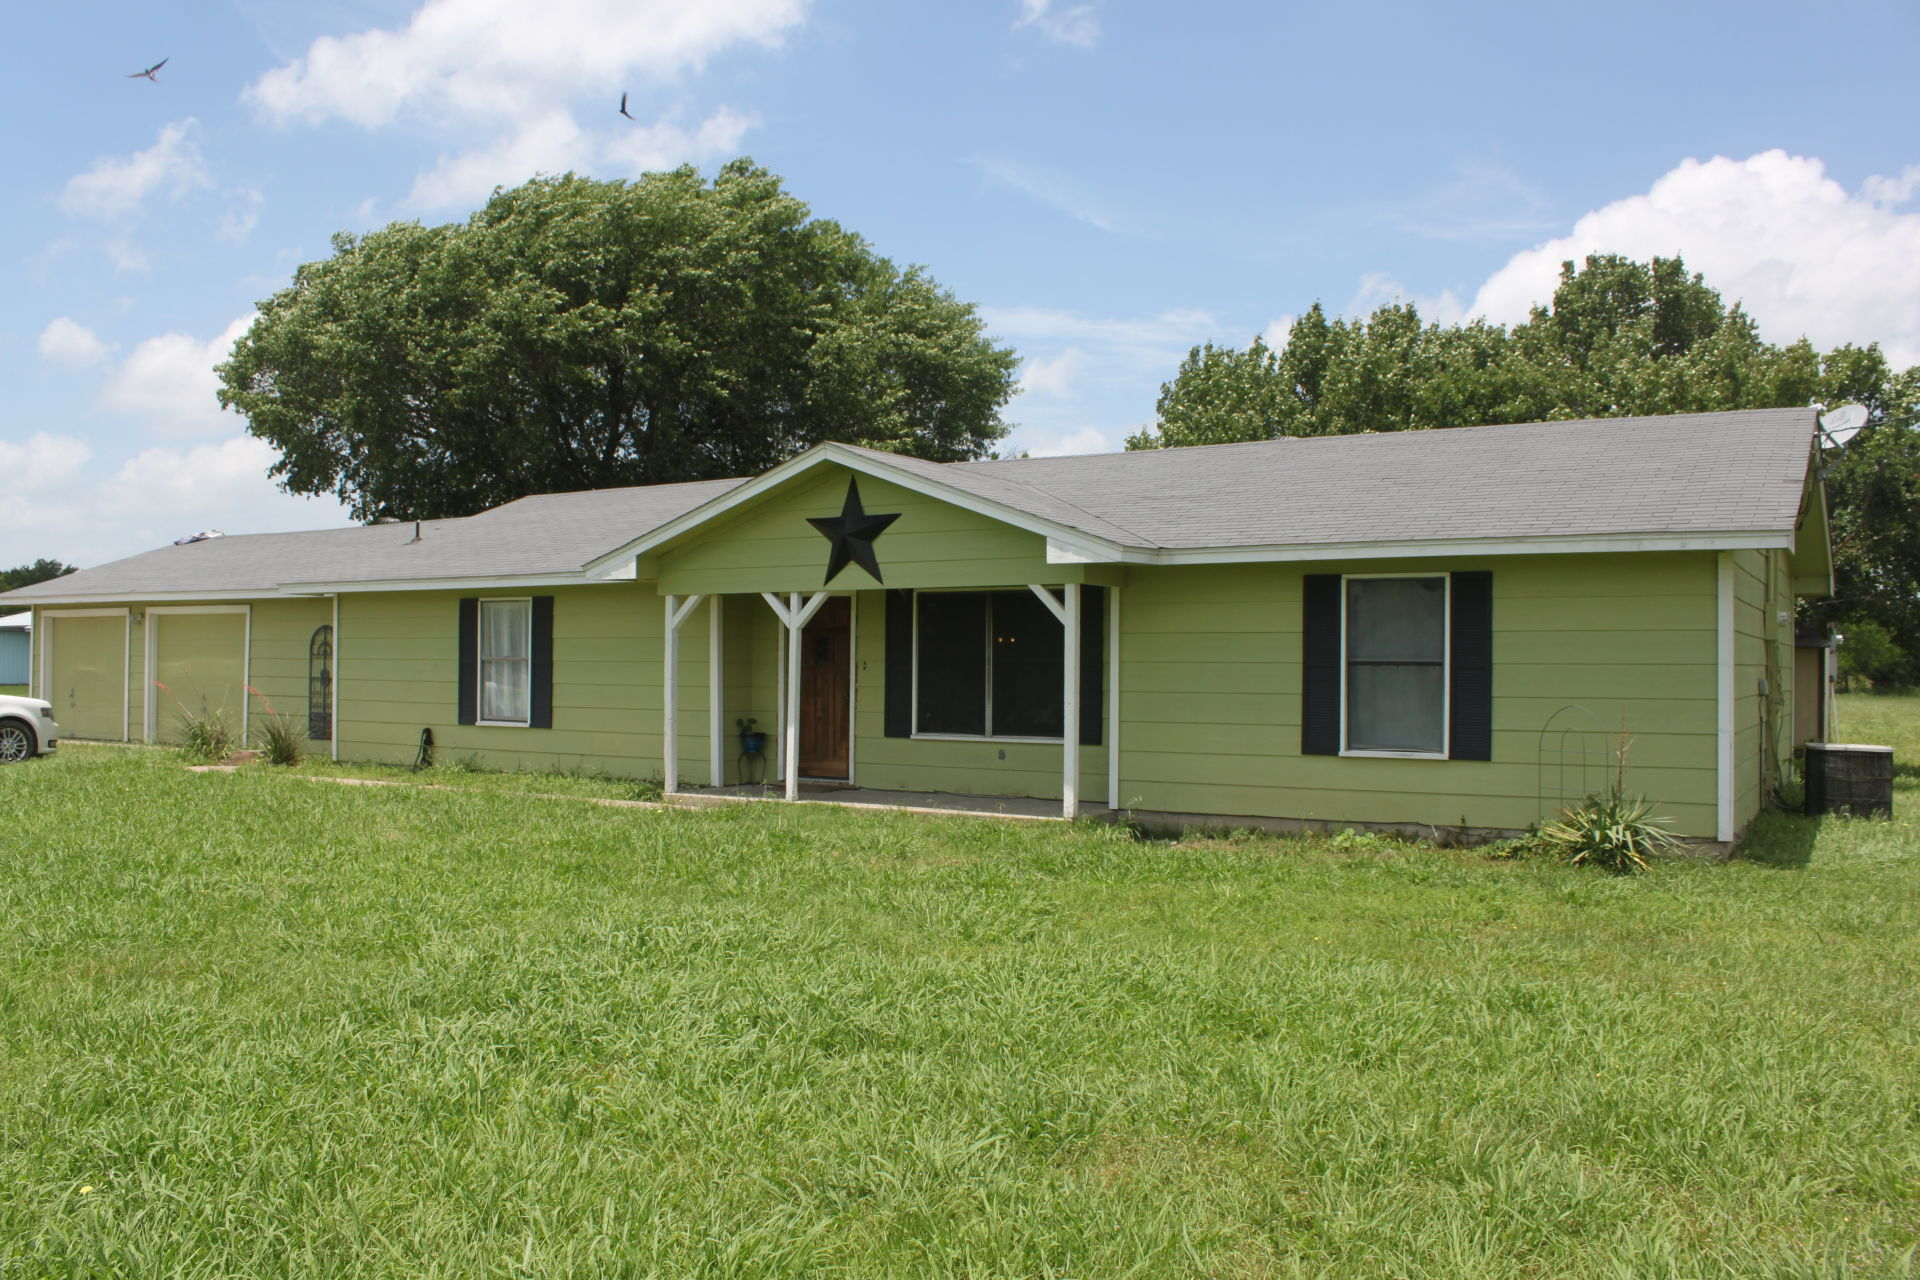 Caddo Mills Home for Sale on 1.23 Acres